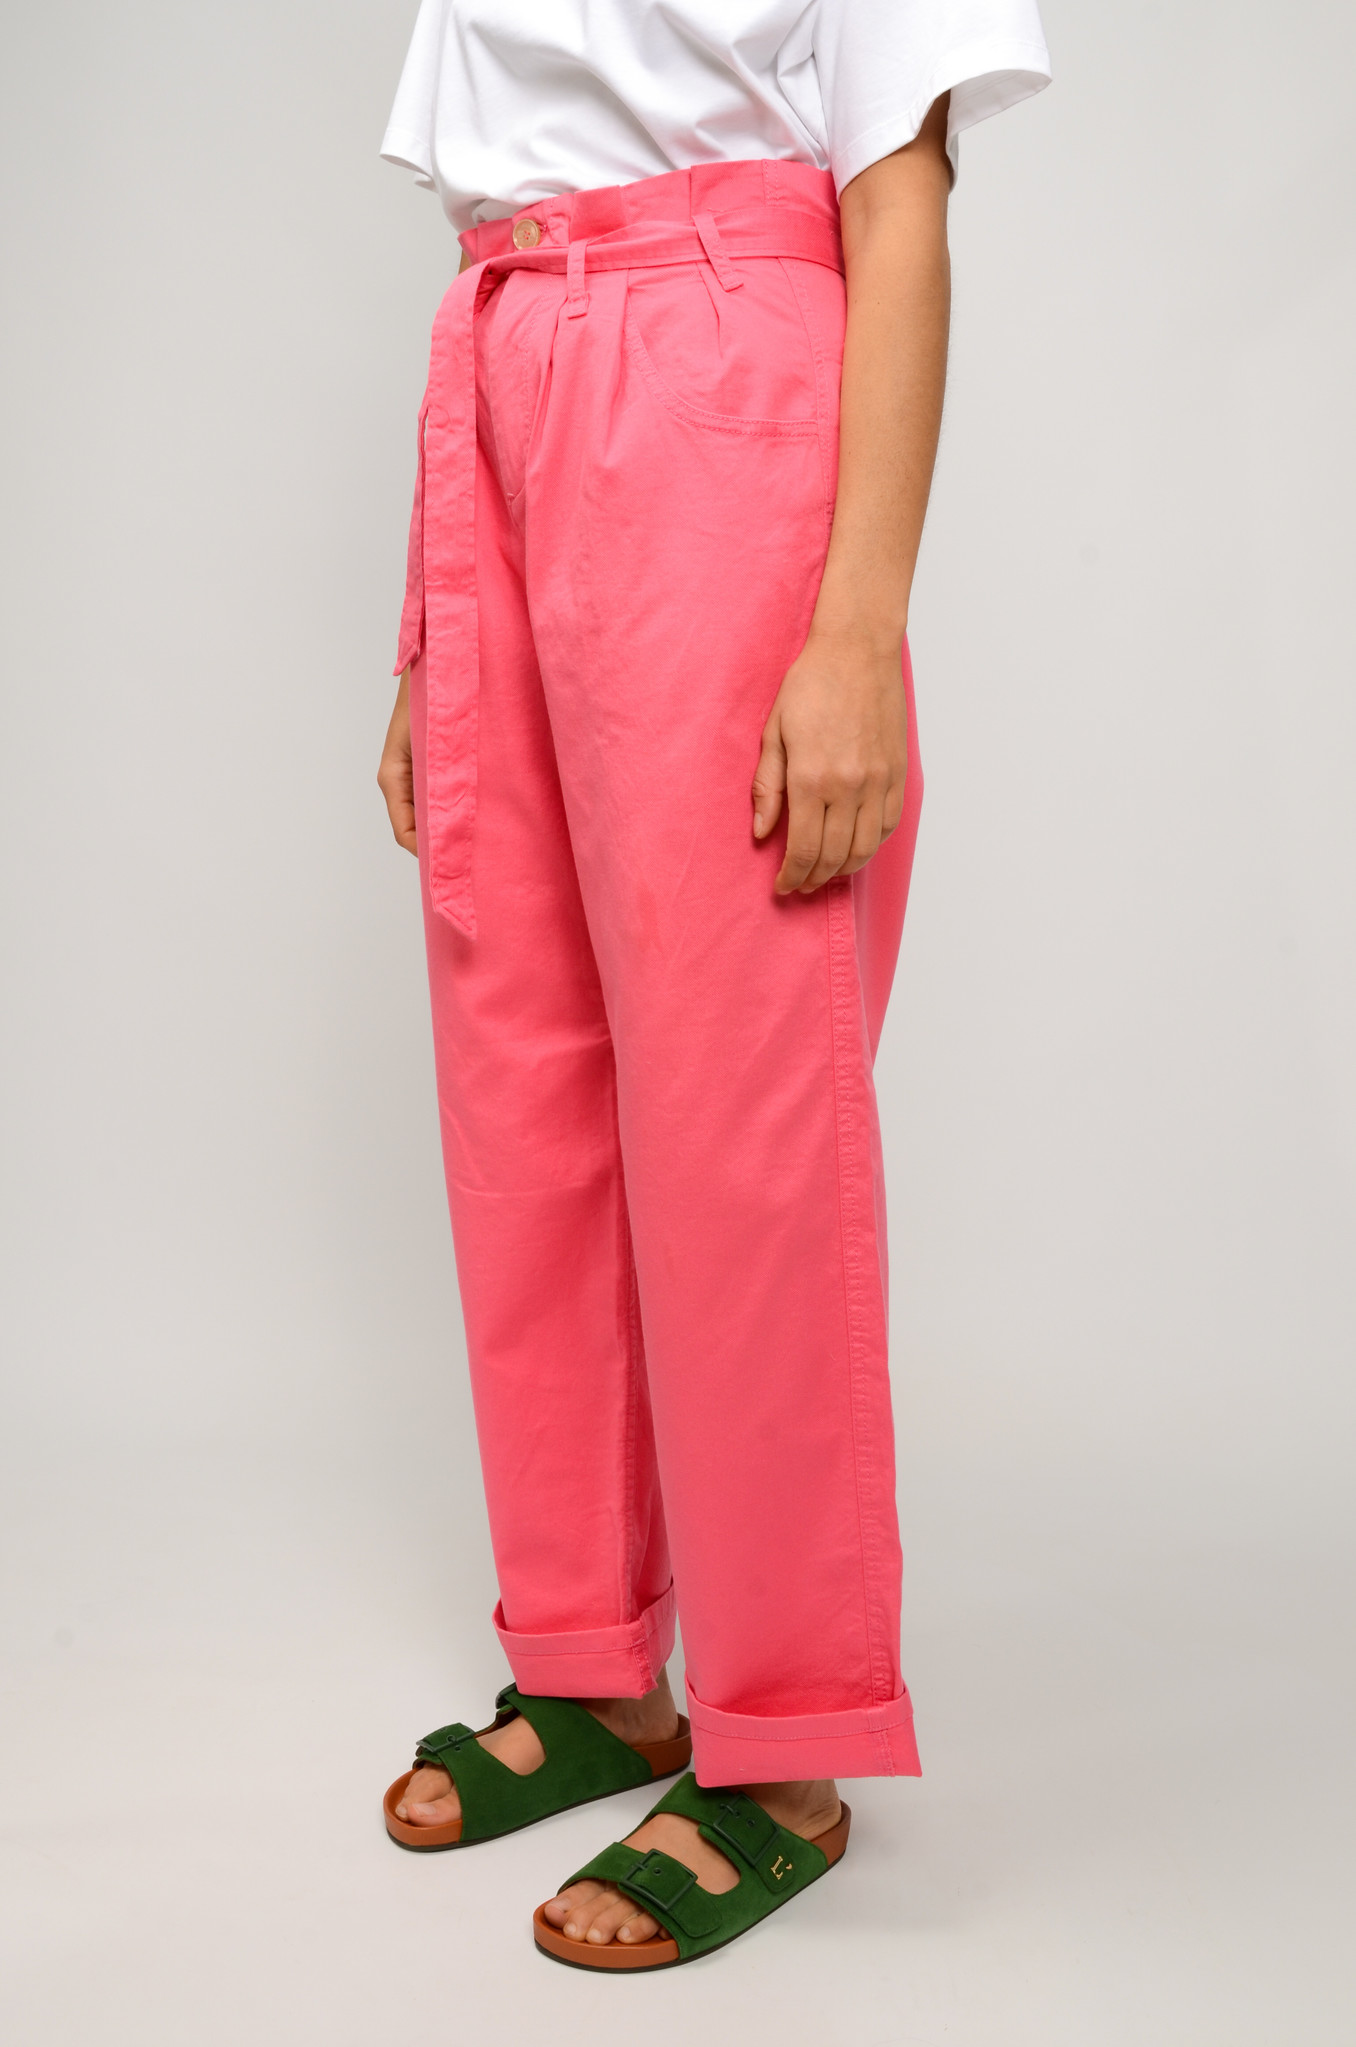 NYSHA TROUSERS IN HONEYSUCKLE PINK-3